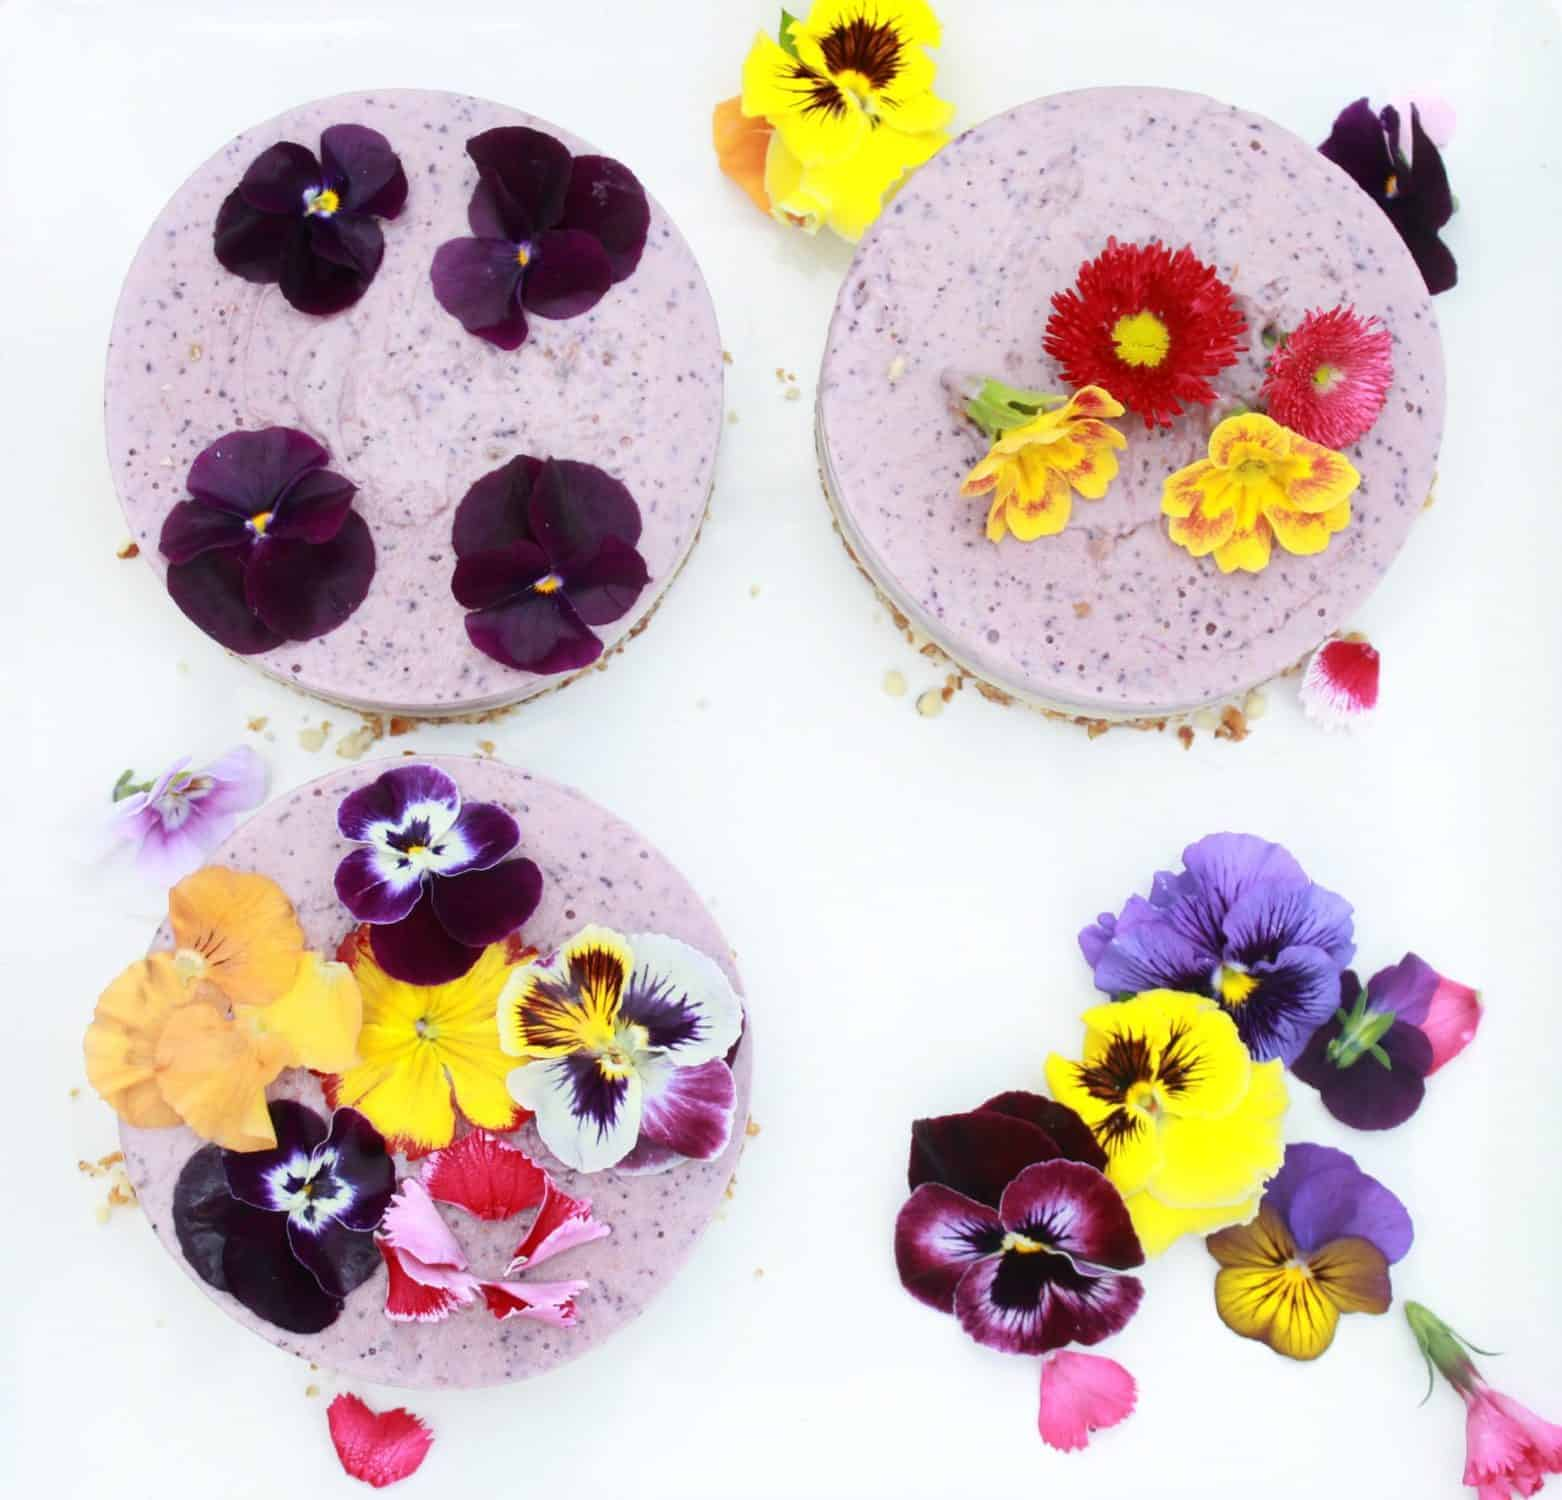 Mini raw berry cheesecakes topped with edible flowers.